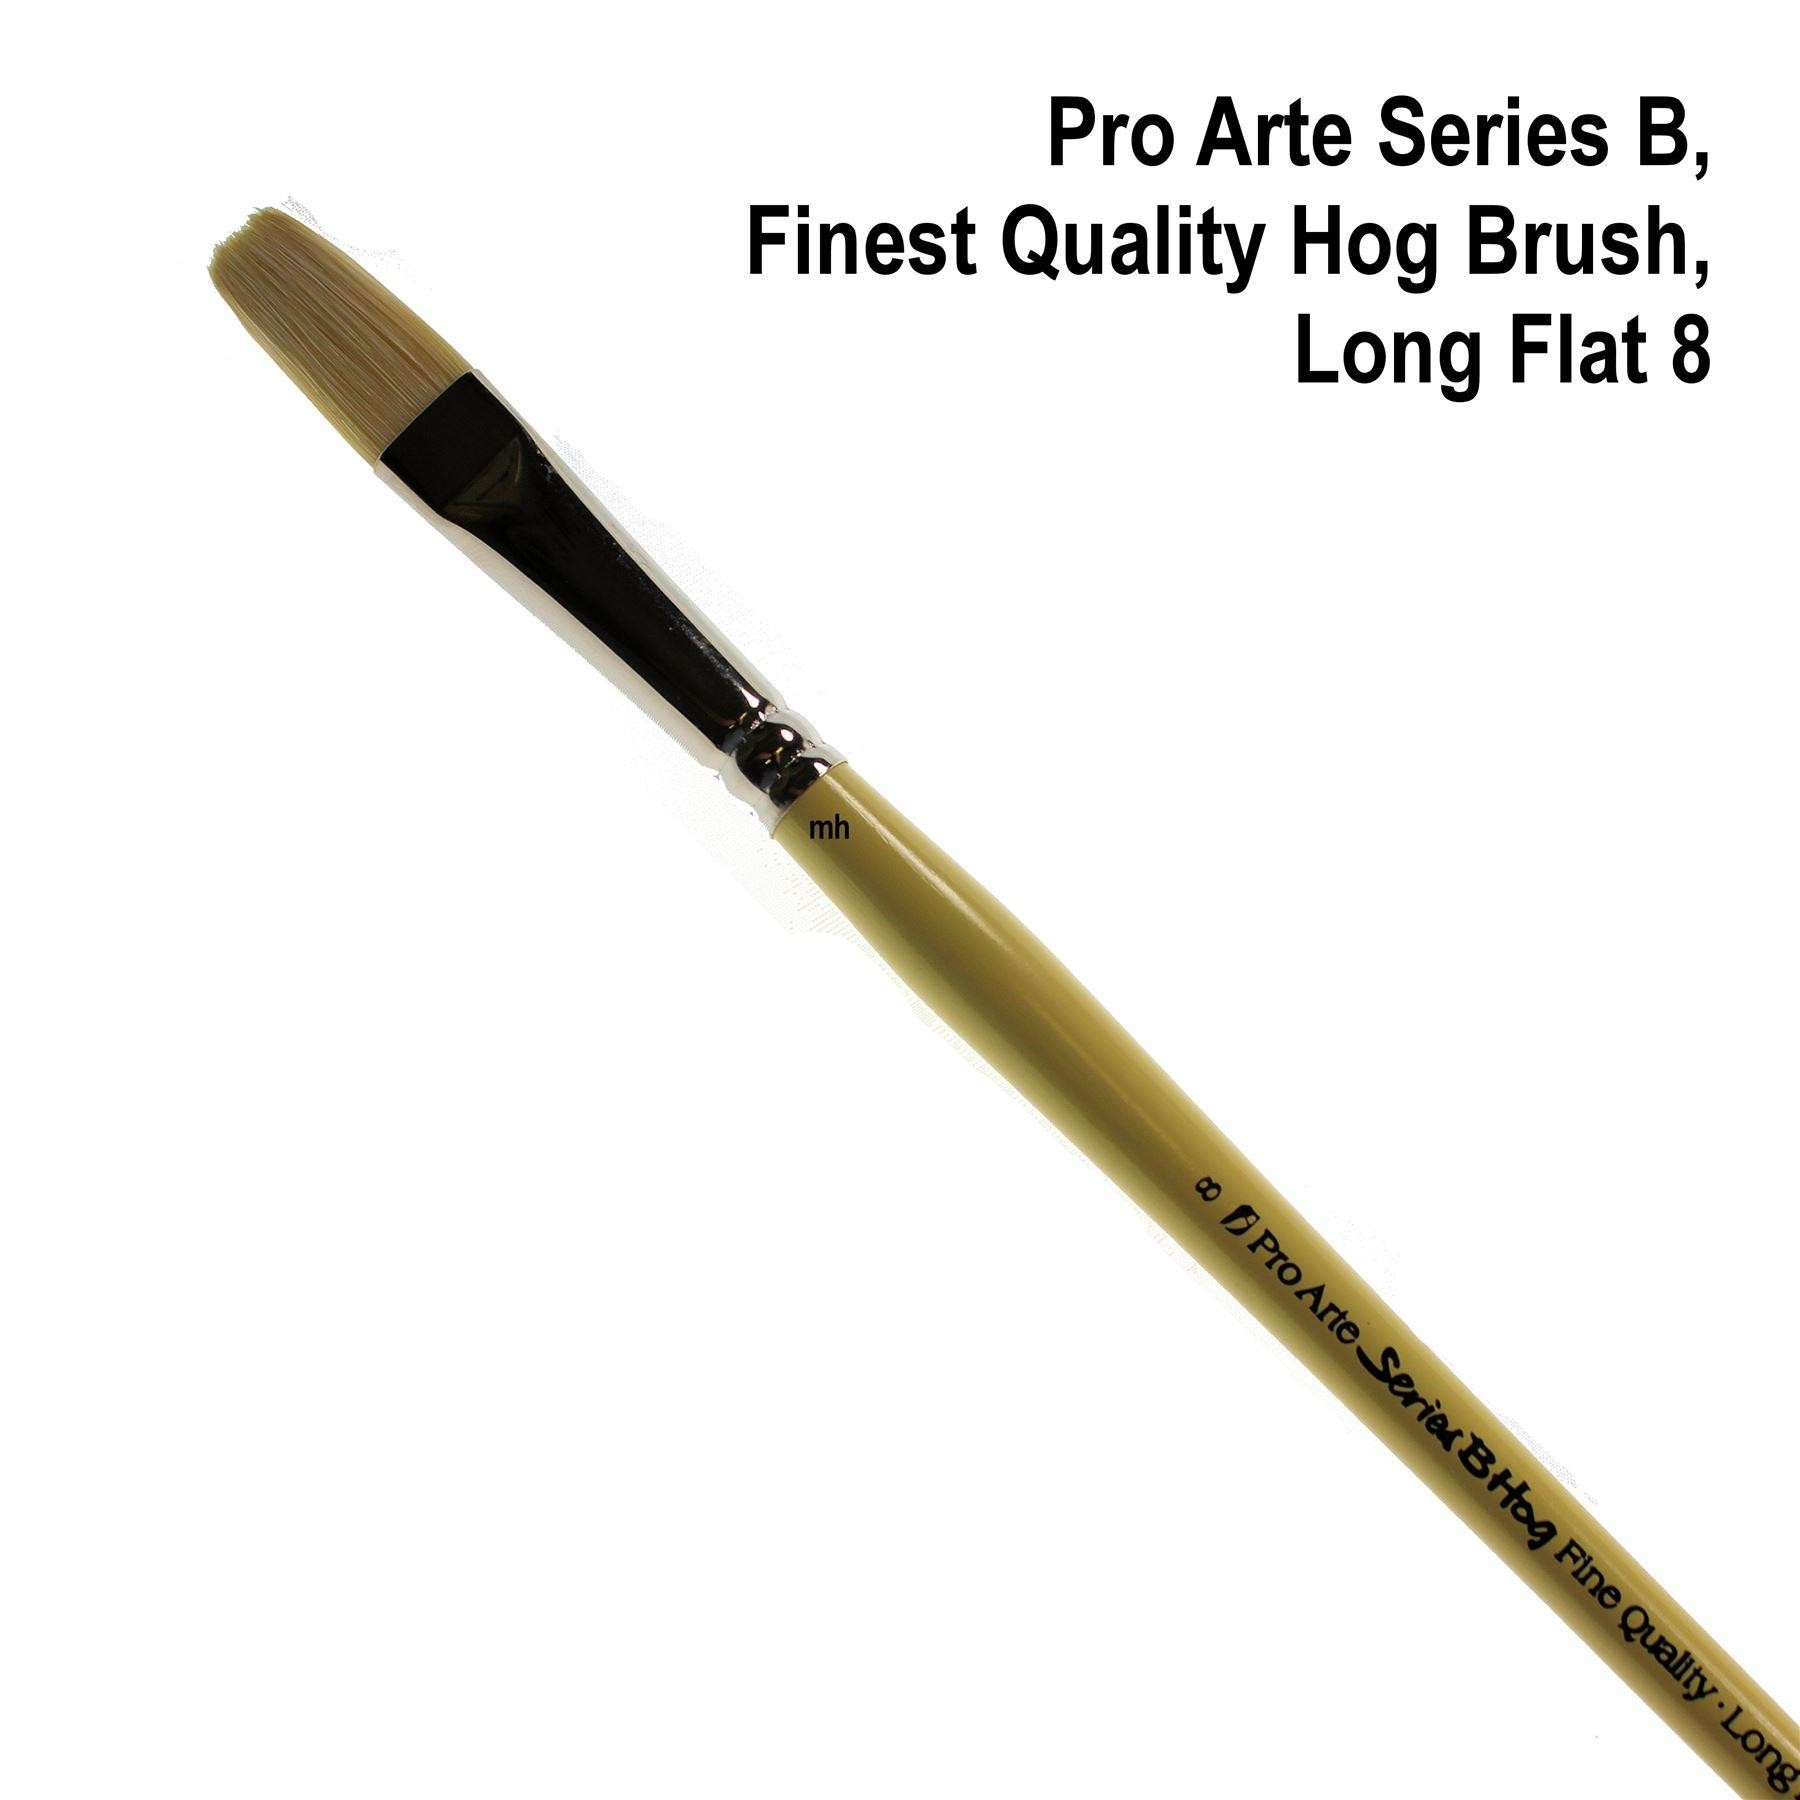 Pro Arte series B Long Flat brush